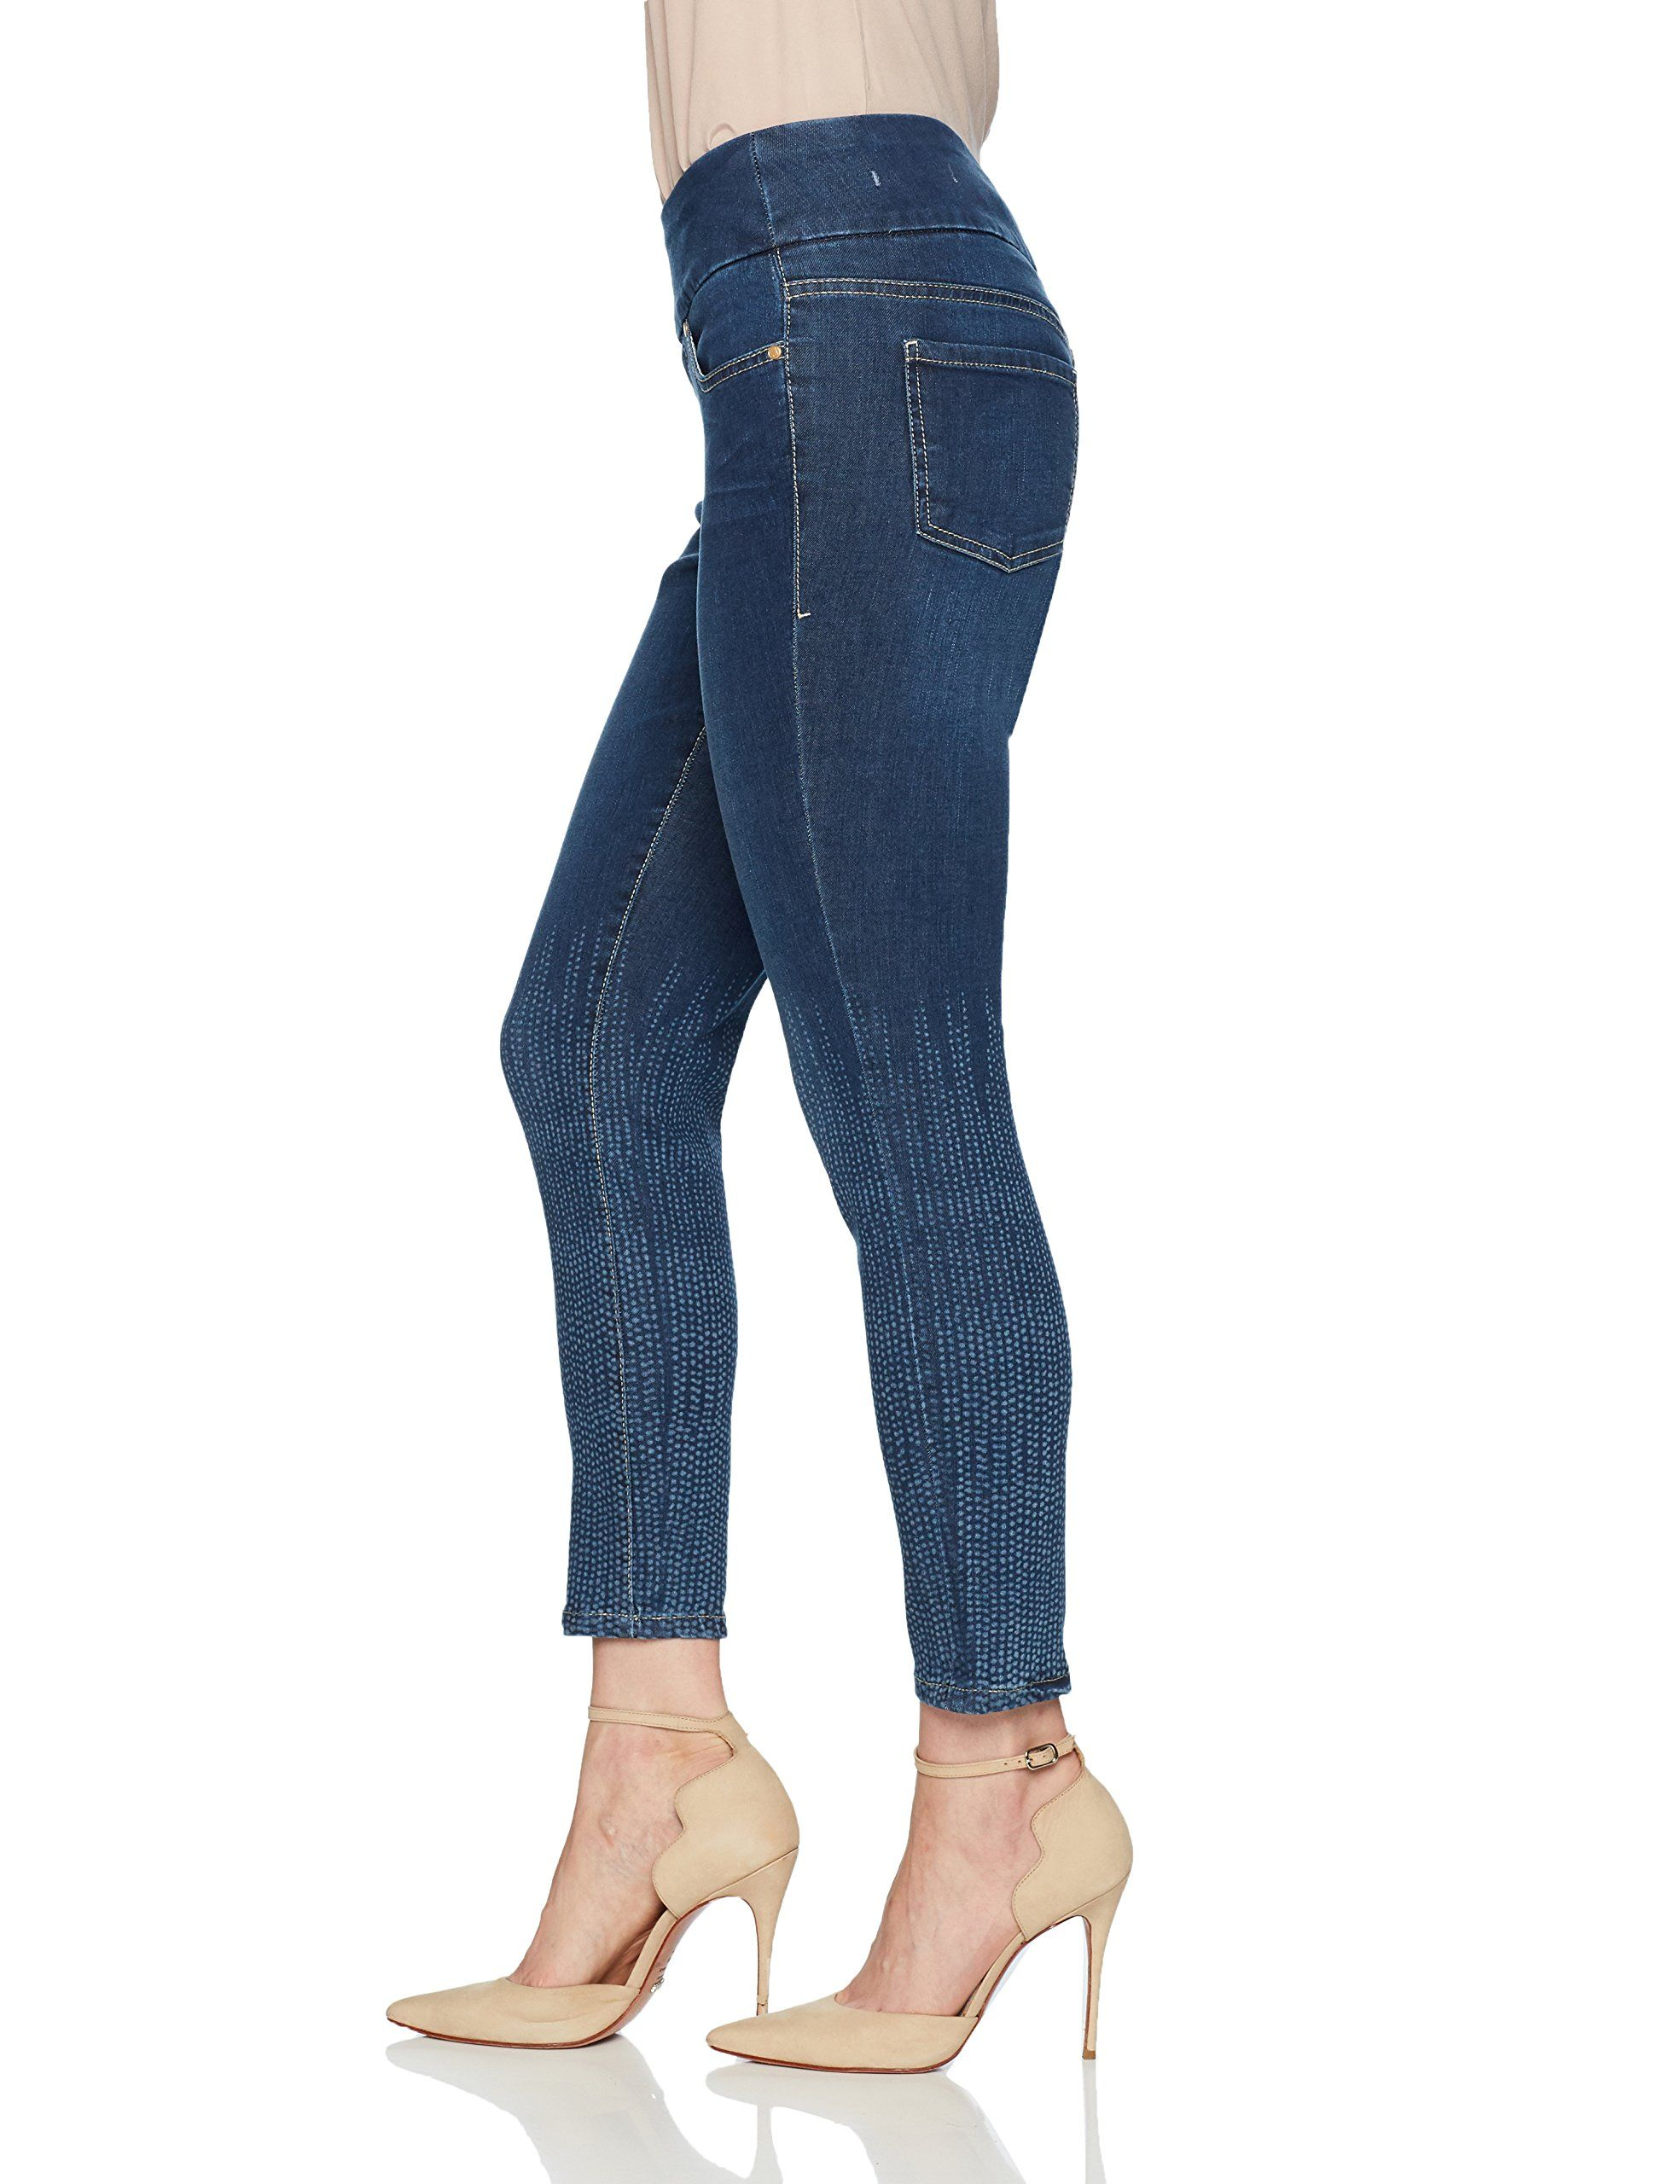 Jag Jeans Womens Nora Skinny Pull on Jean with Embroidery